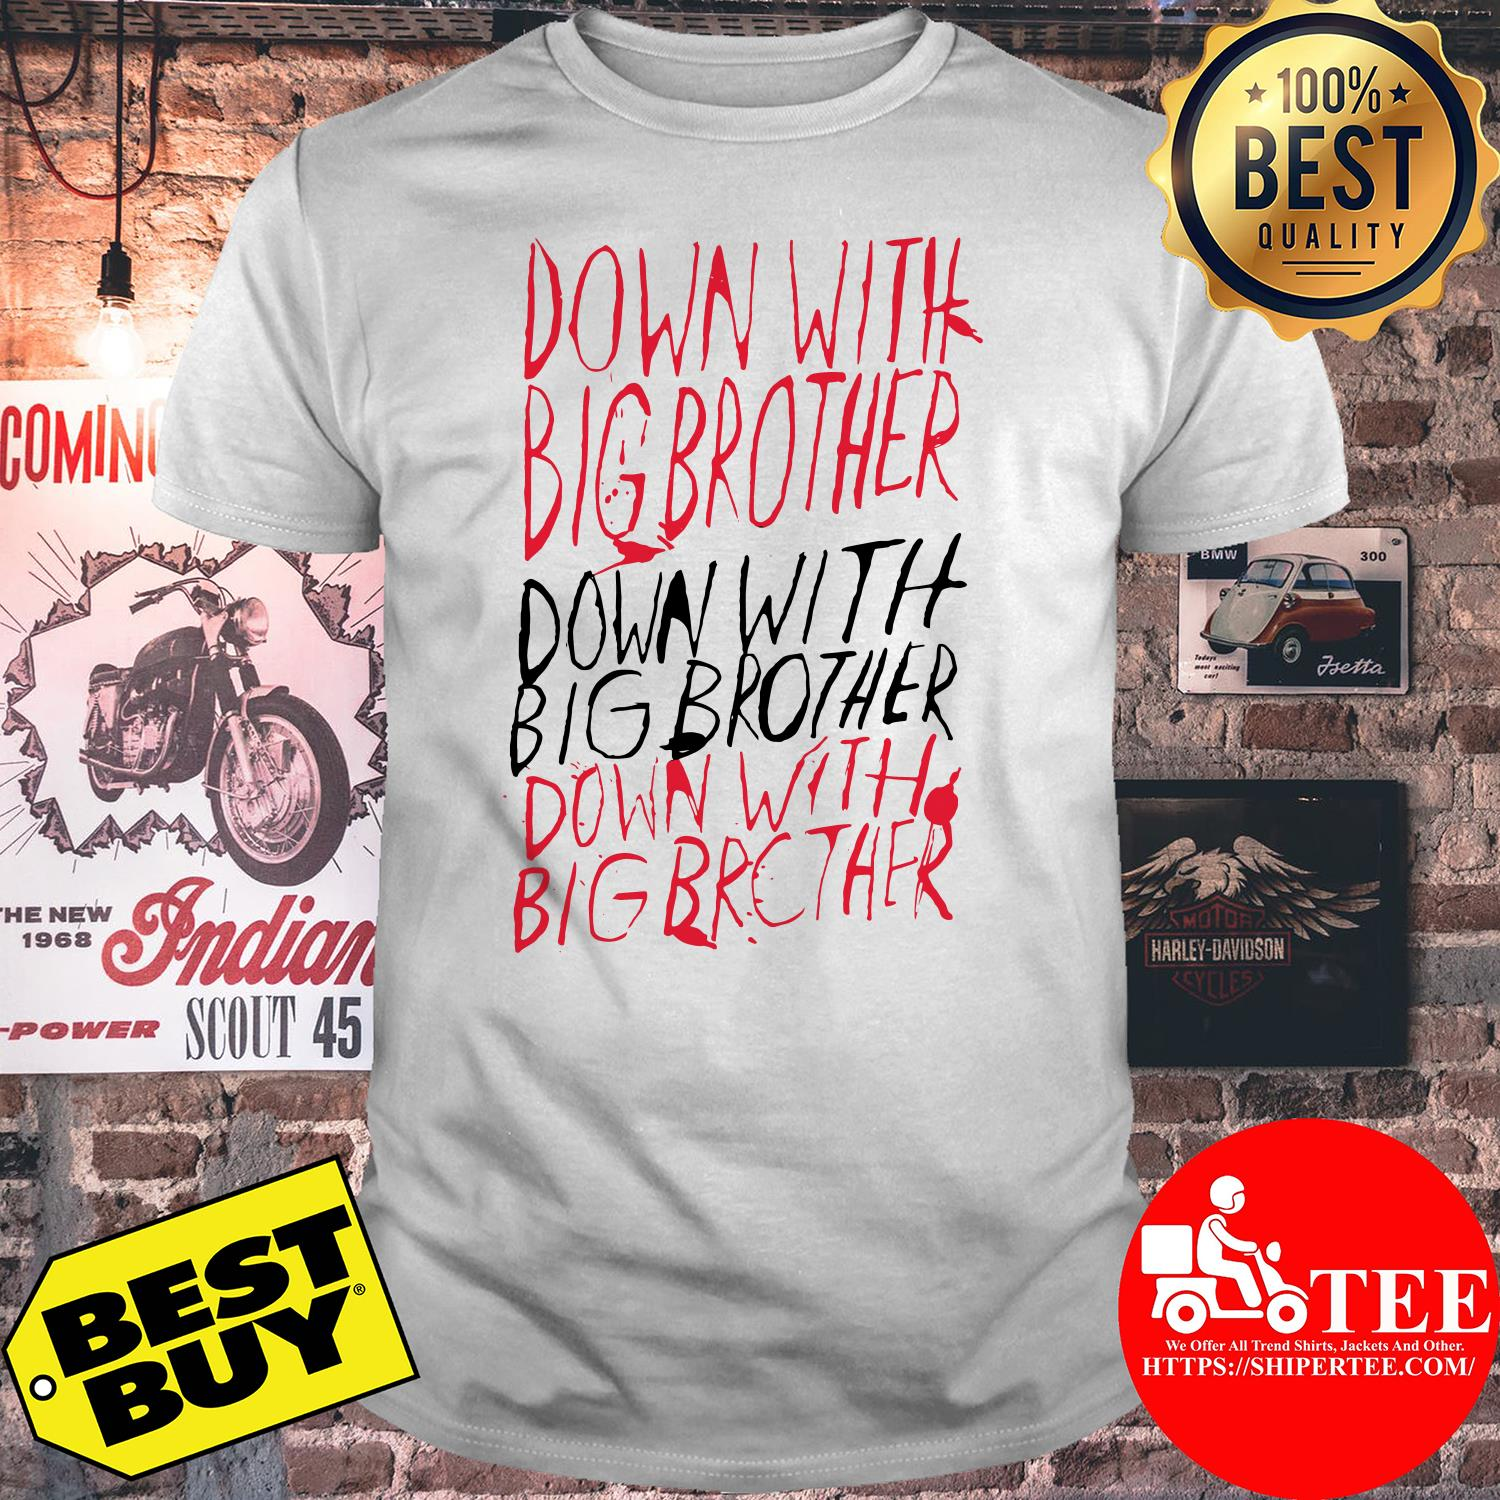 1984-Down with Big Brother Shirt